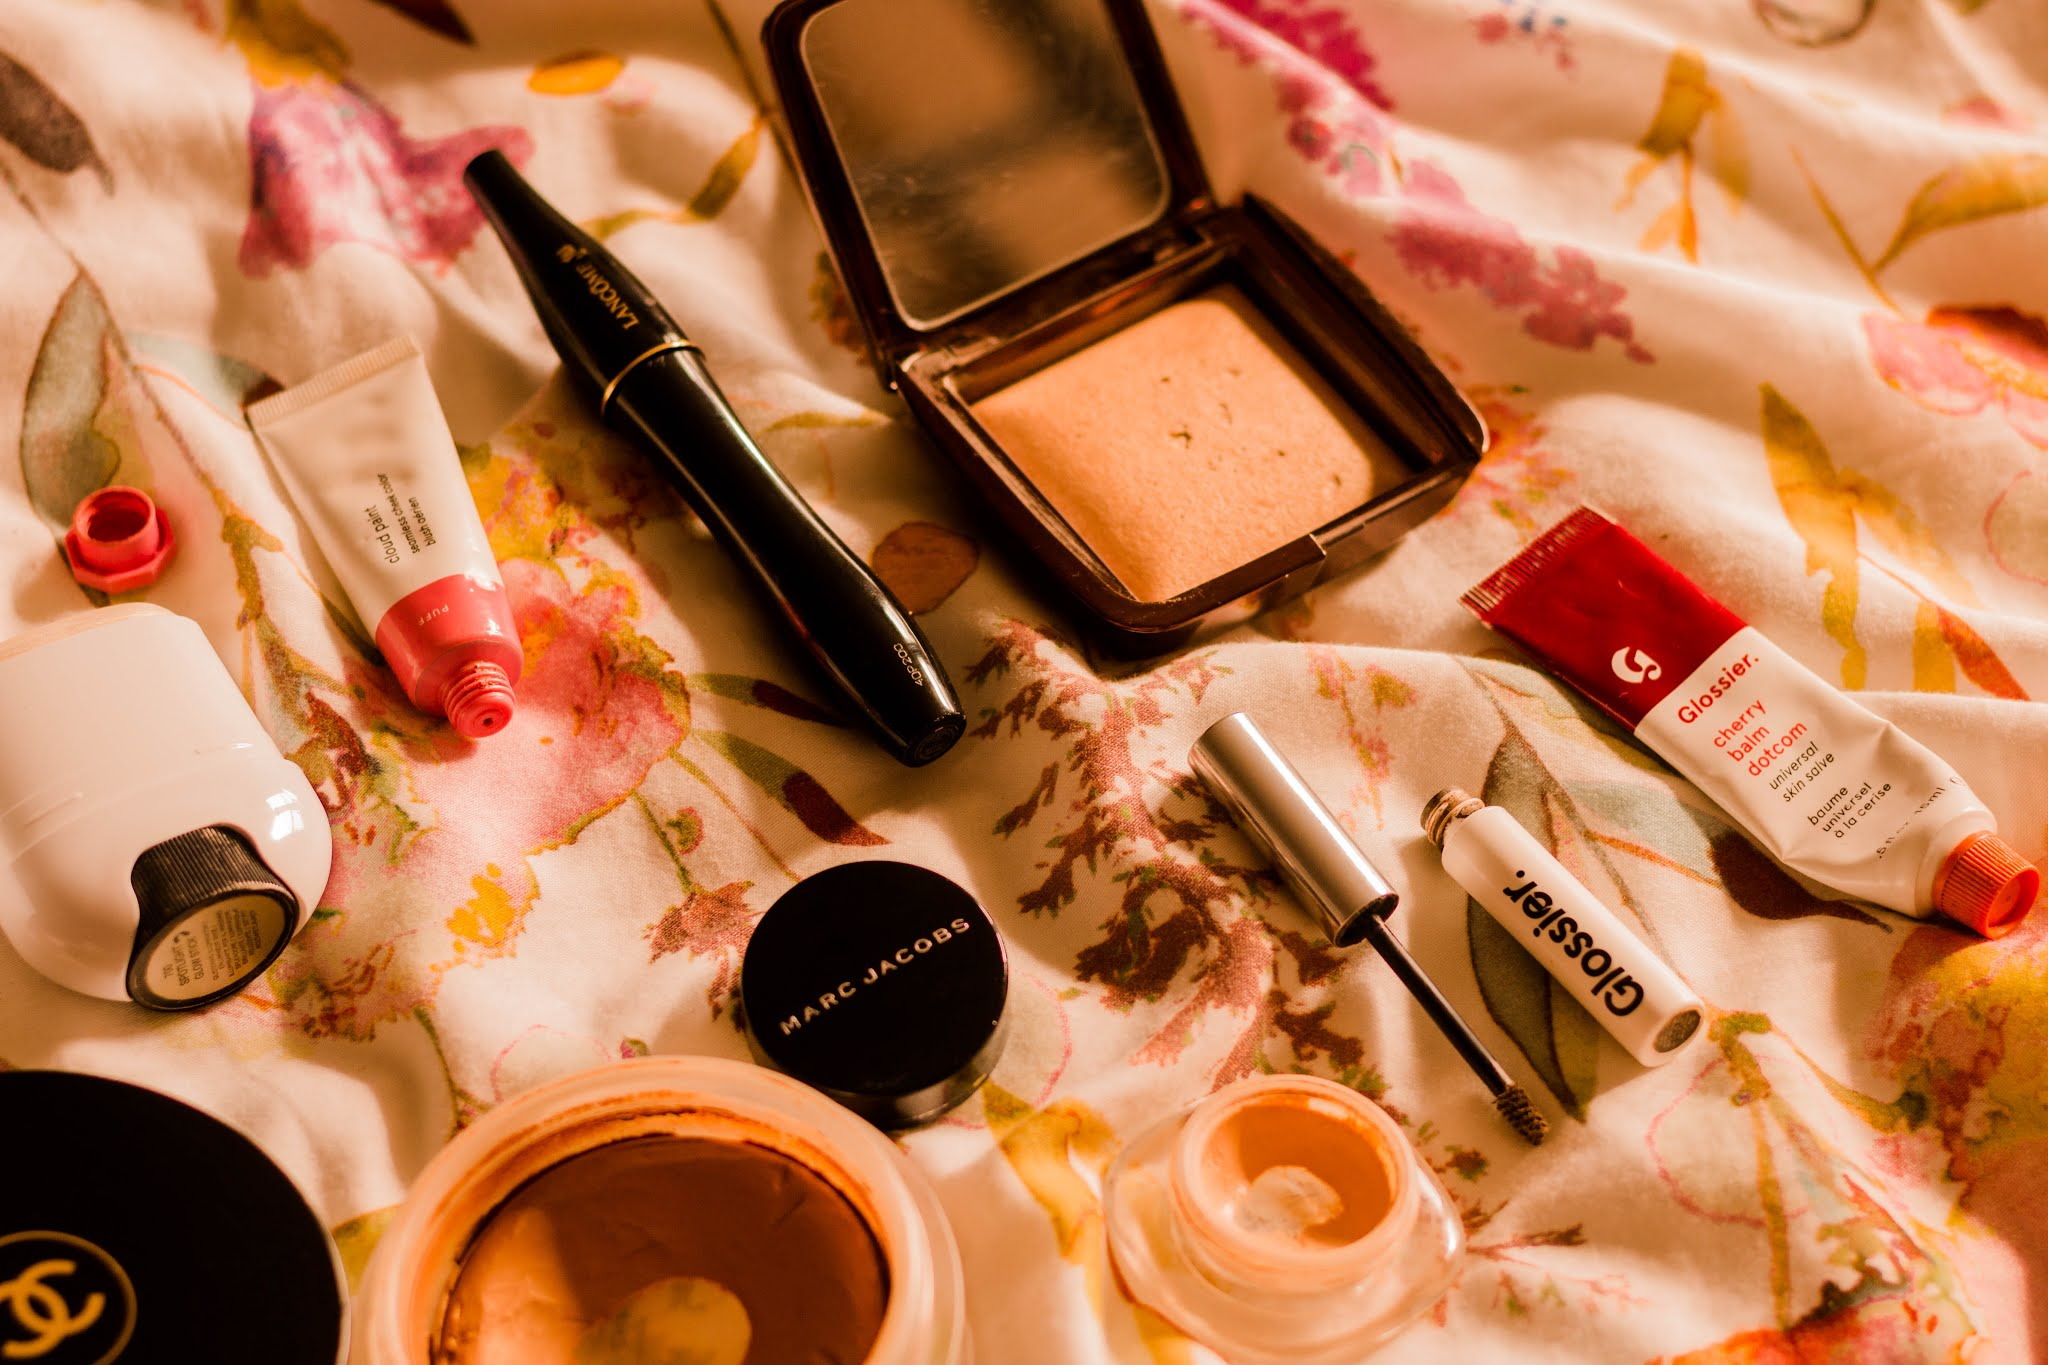 Makeup & Beauty Flat Lay: Chanel, Marc Jacobs, Glossier, Hourglass & More for a simple make up routine